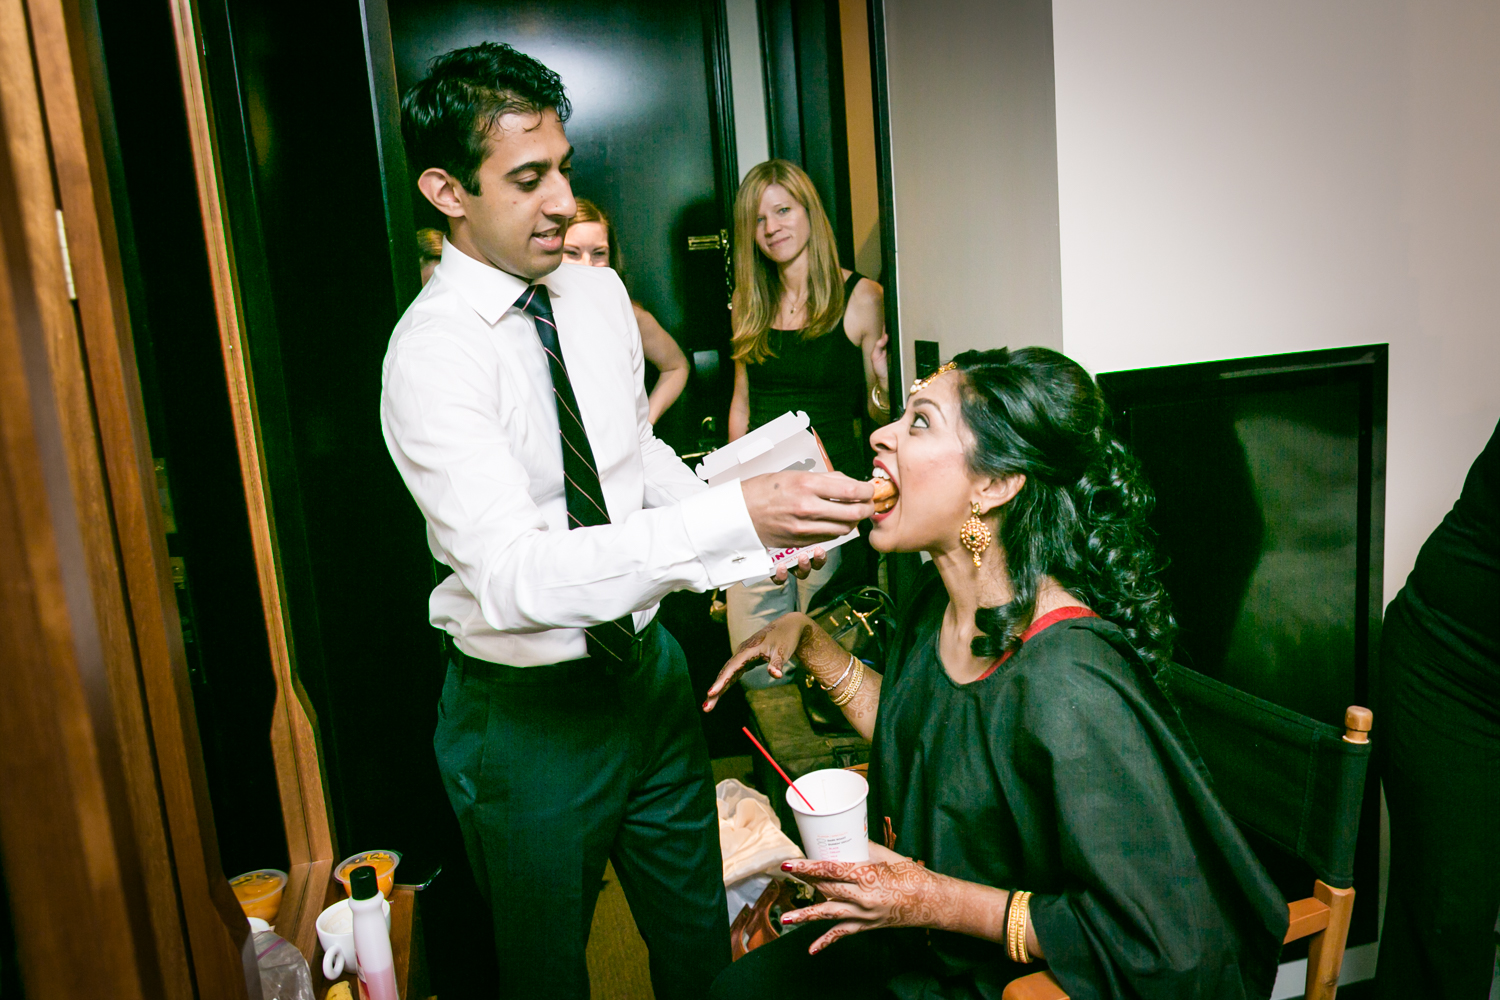 Brother feeding bride while she is getting ready